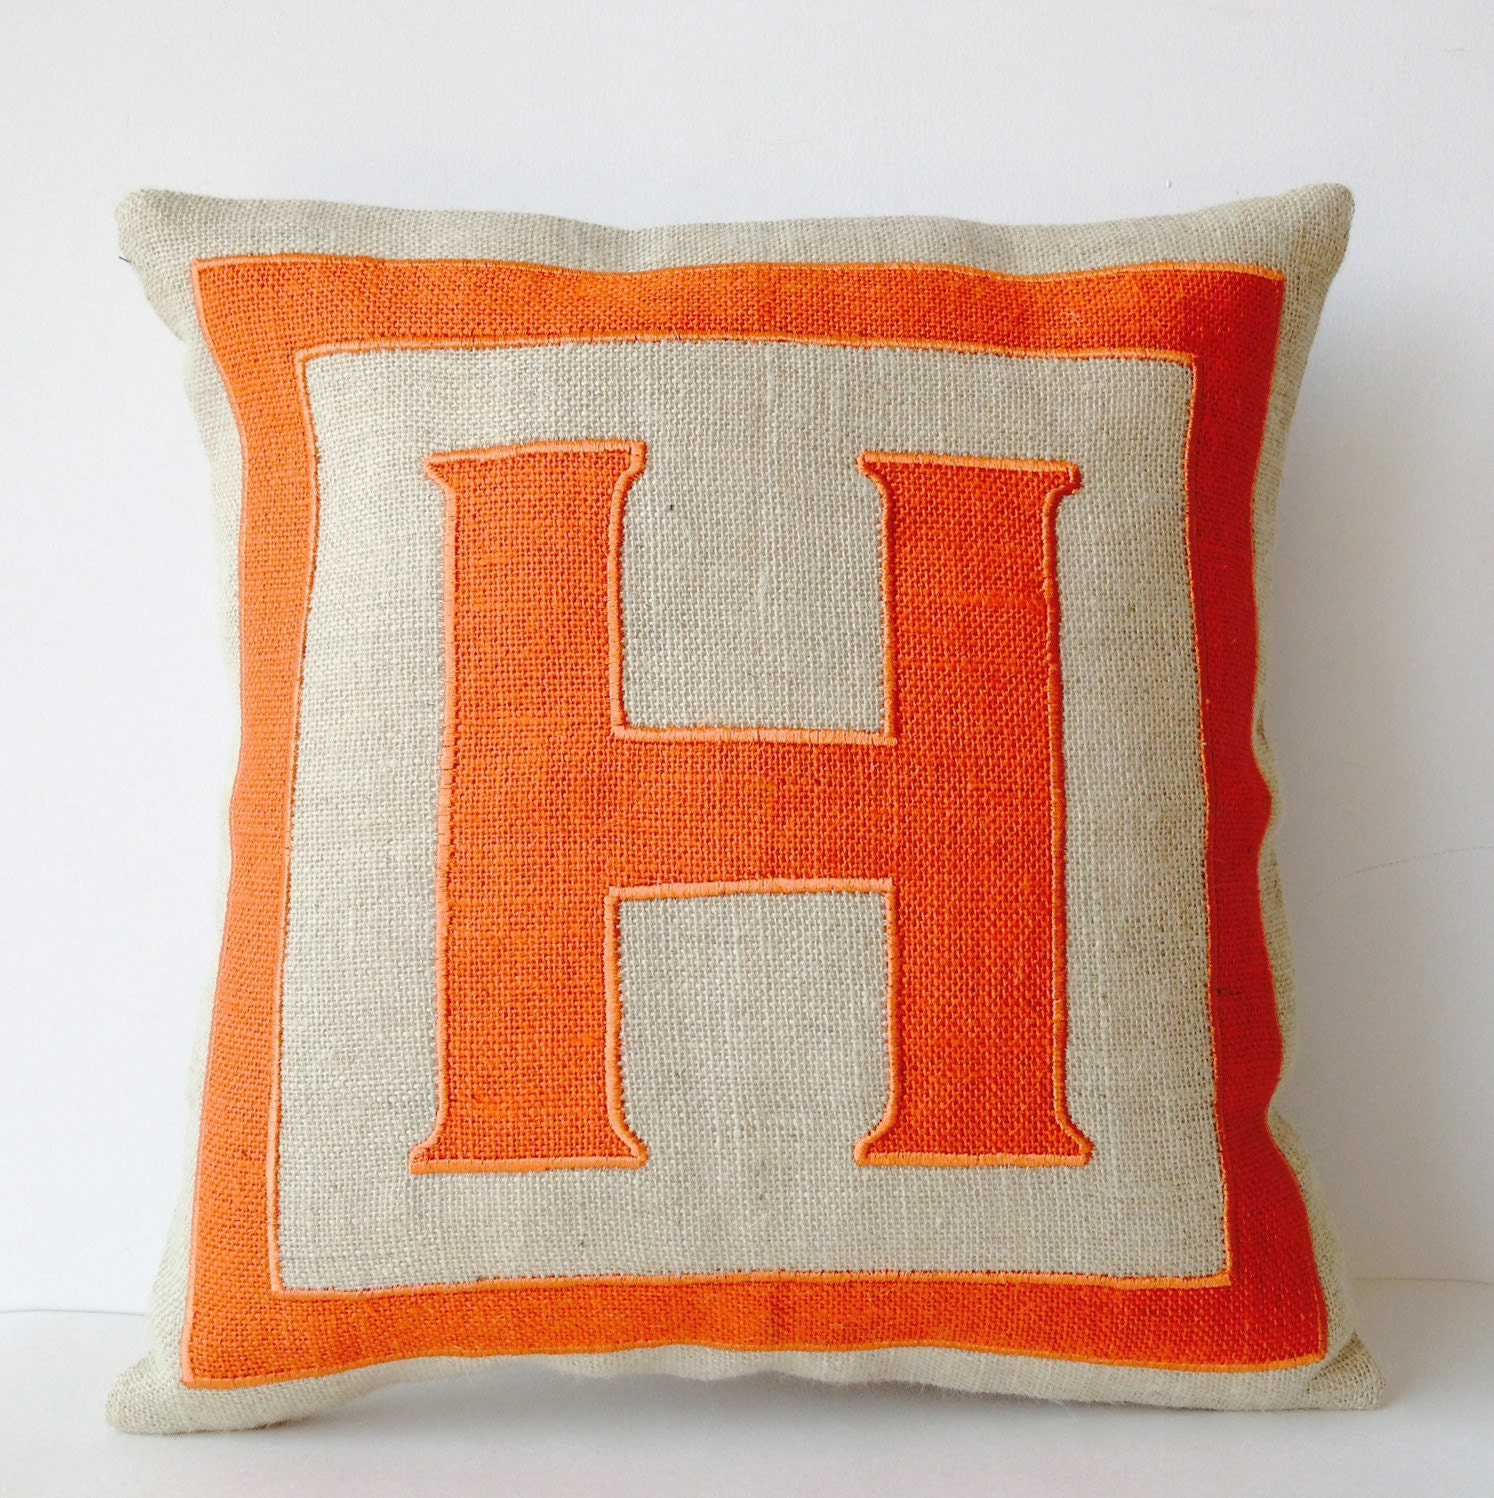 Decorative Pillows With Monogram : Personalized Monogram throw pillow Burlap pillows Orange